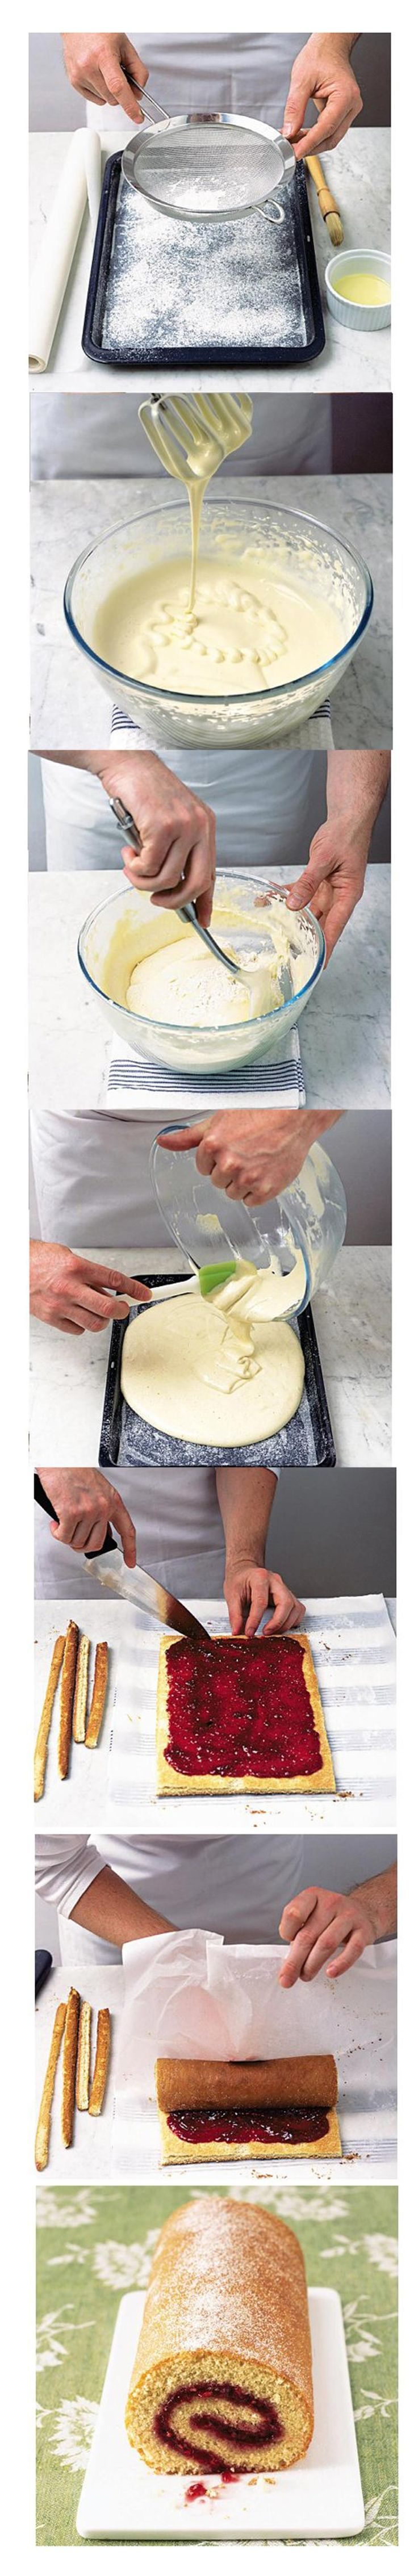 How to make a swiss roll